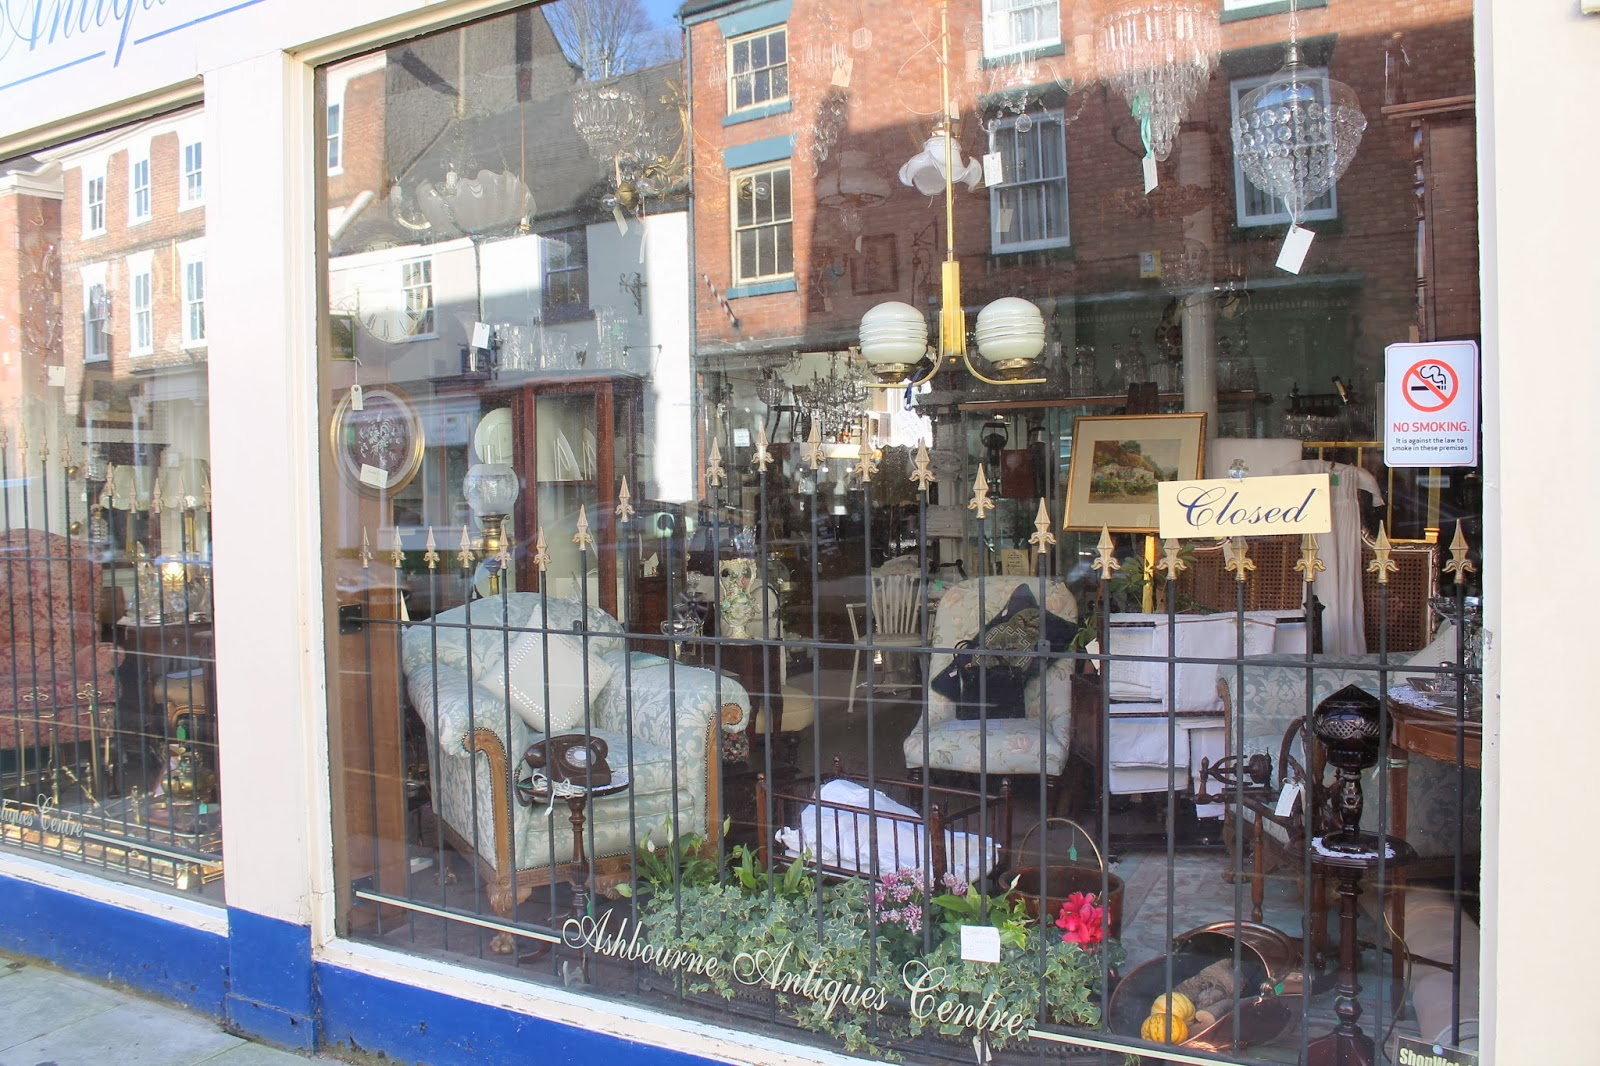 ashbourne via lovebirds vintage